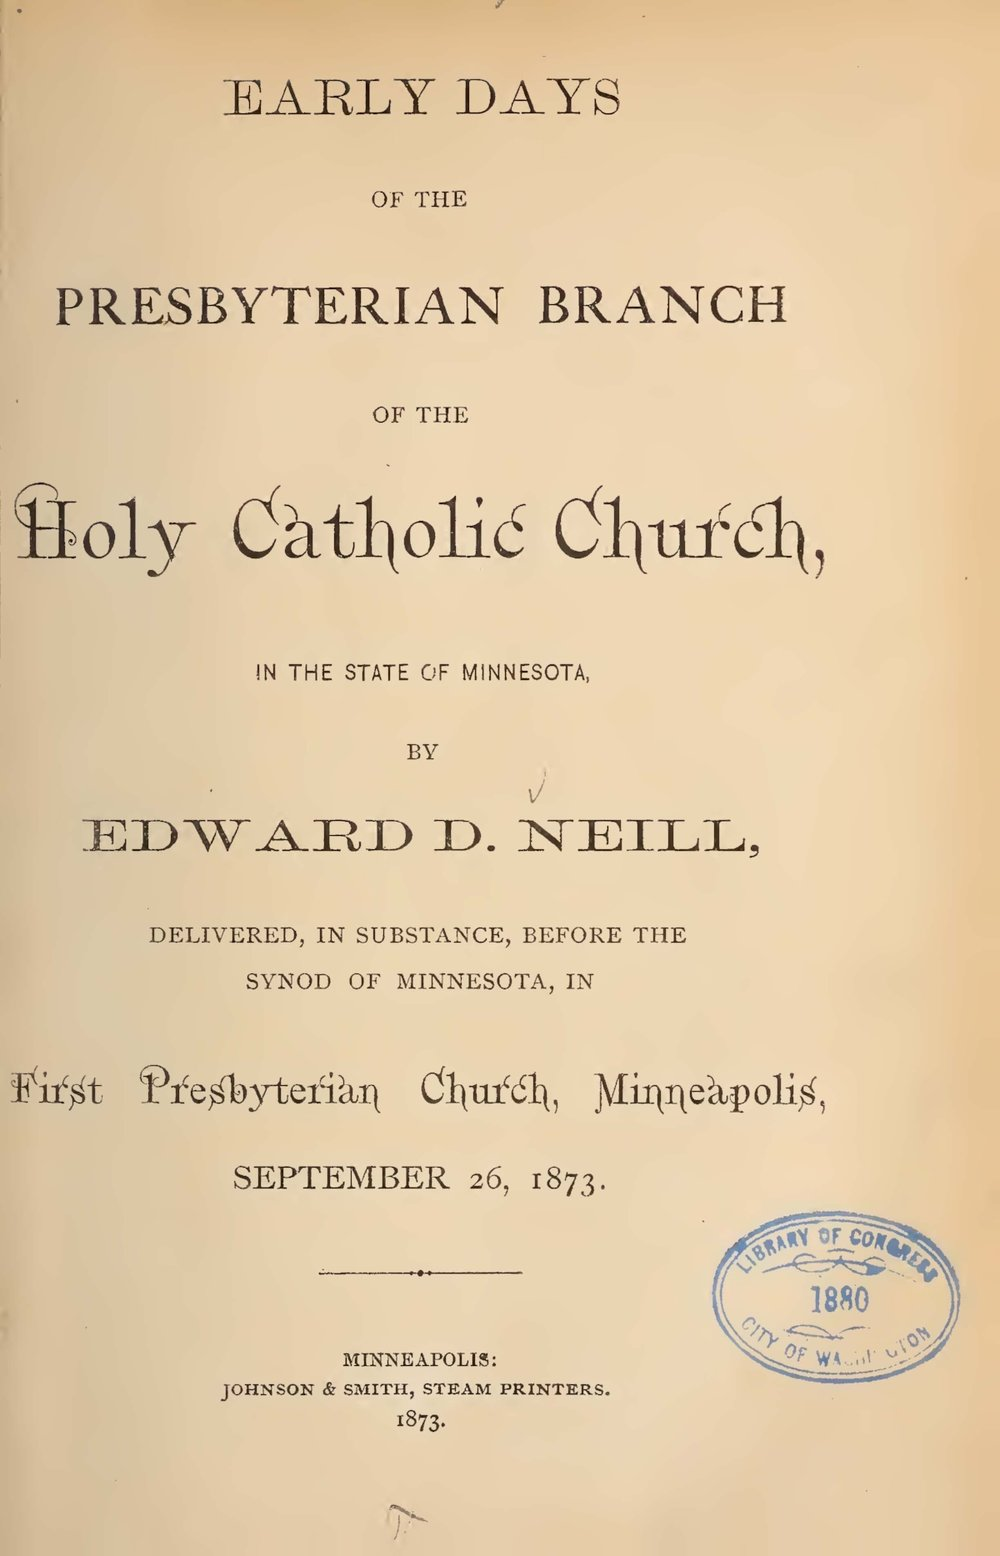 Neill, Edward Duffield, Early Days of the Presbyterian Branch of the Holy Catholic Church in the State of Minnesota Title Page.jpg